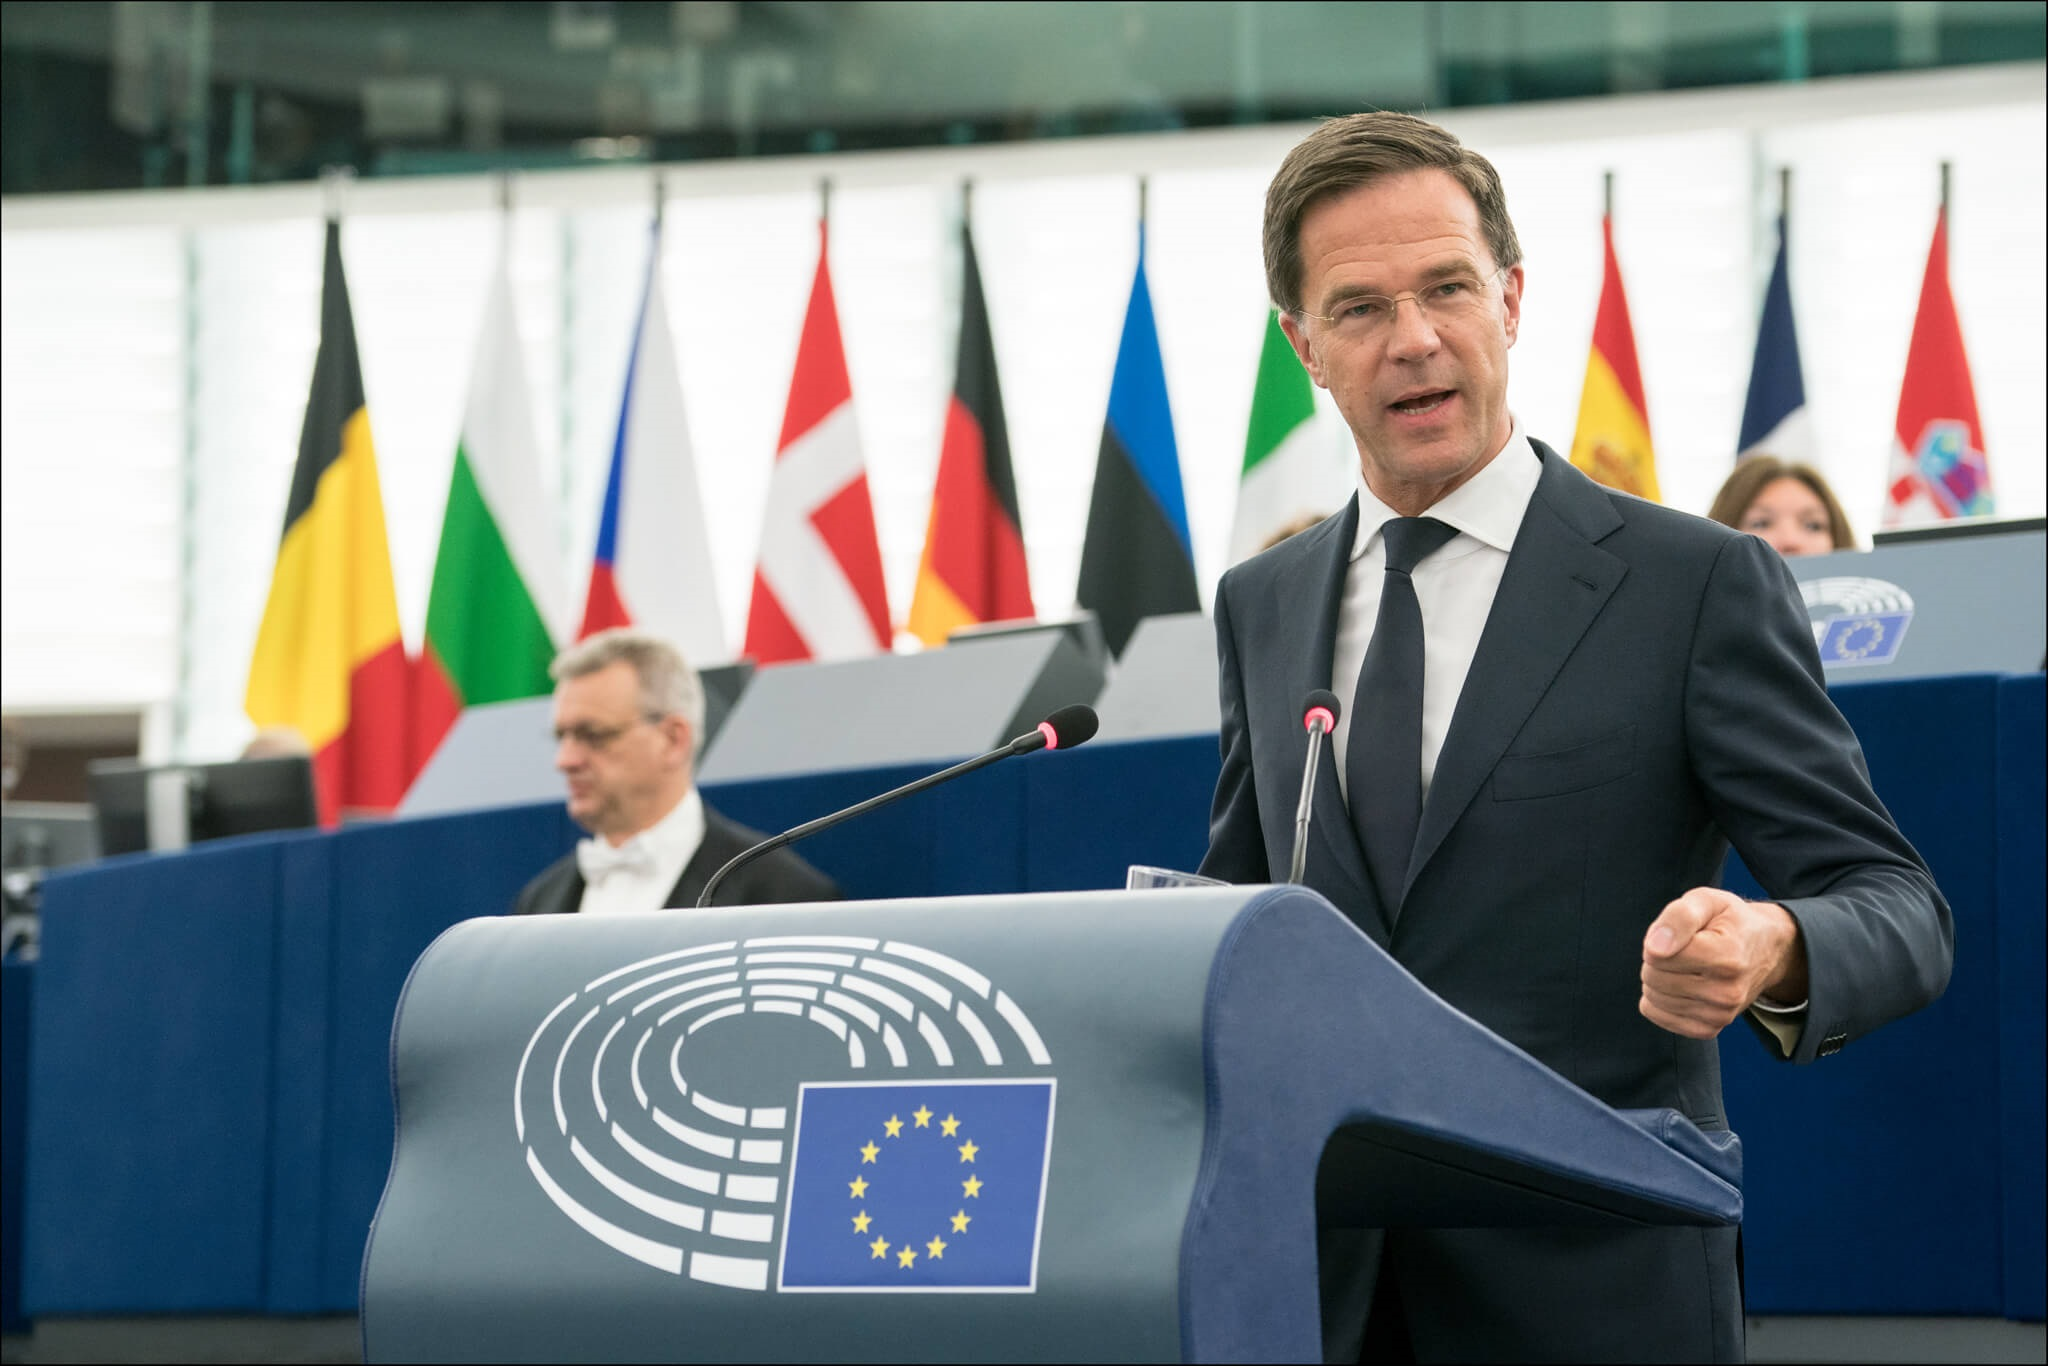 Prime Minister of the Netherlands Mark Rutte debated the future of Europe with MEPs and EU Commission First Vice-President Frans Timmermans on Wednesday.